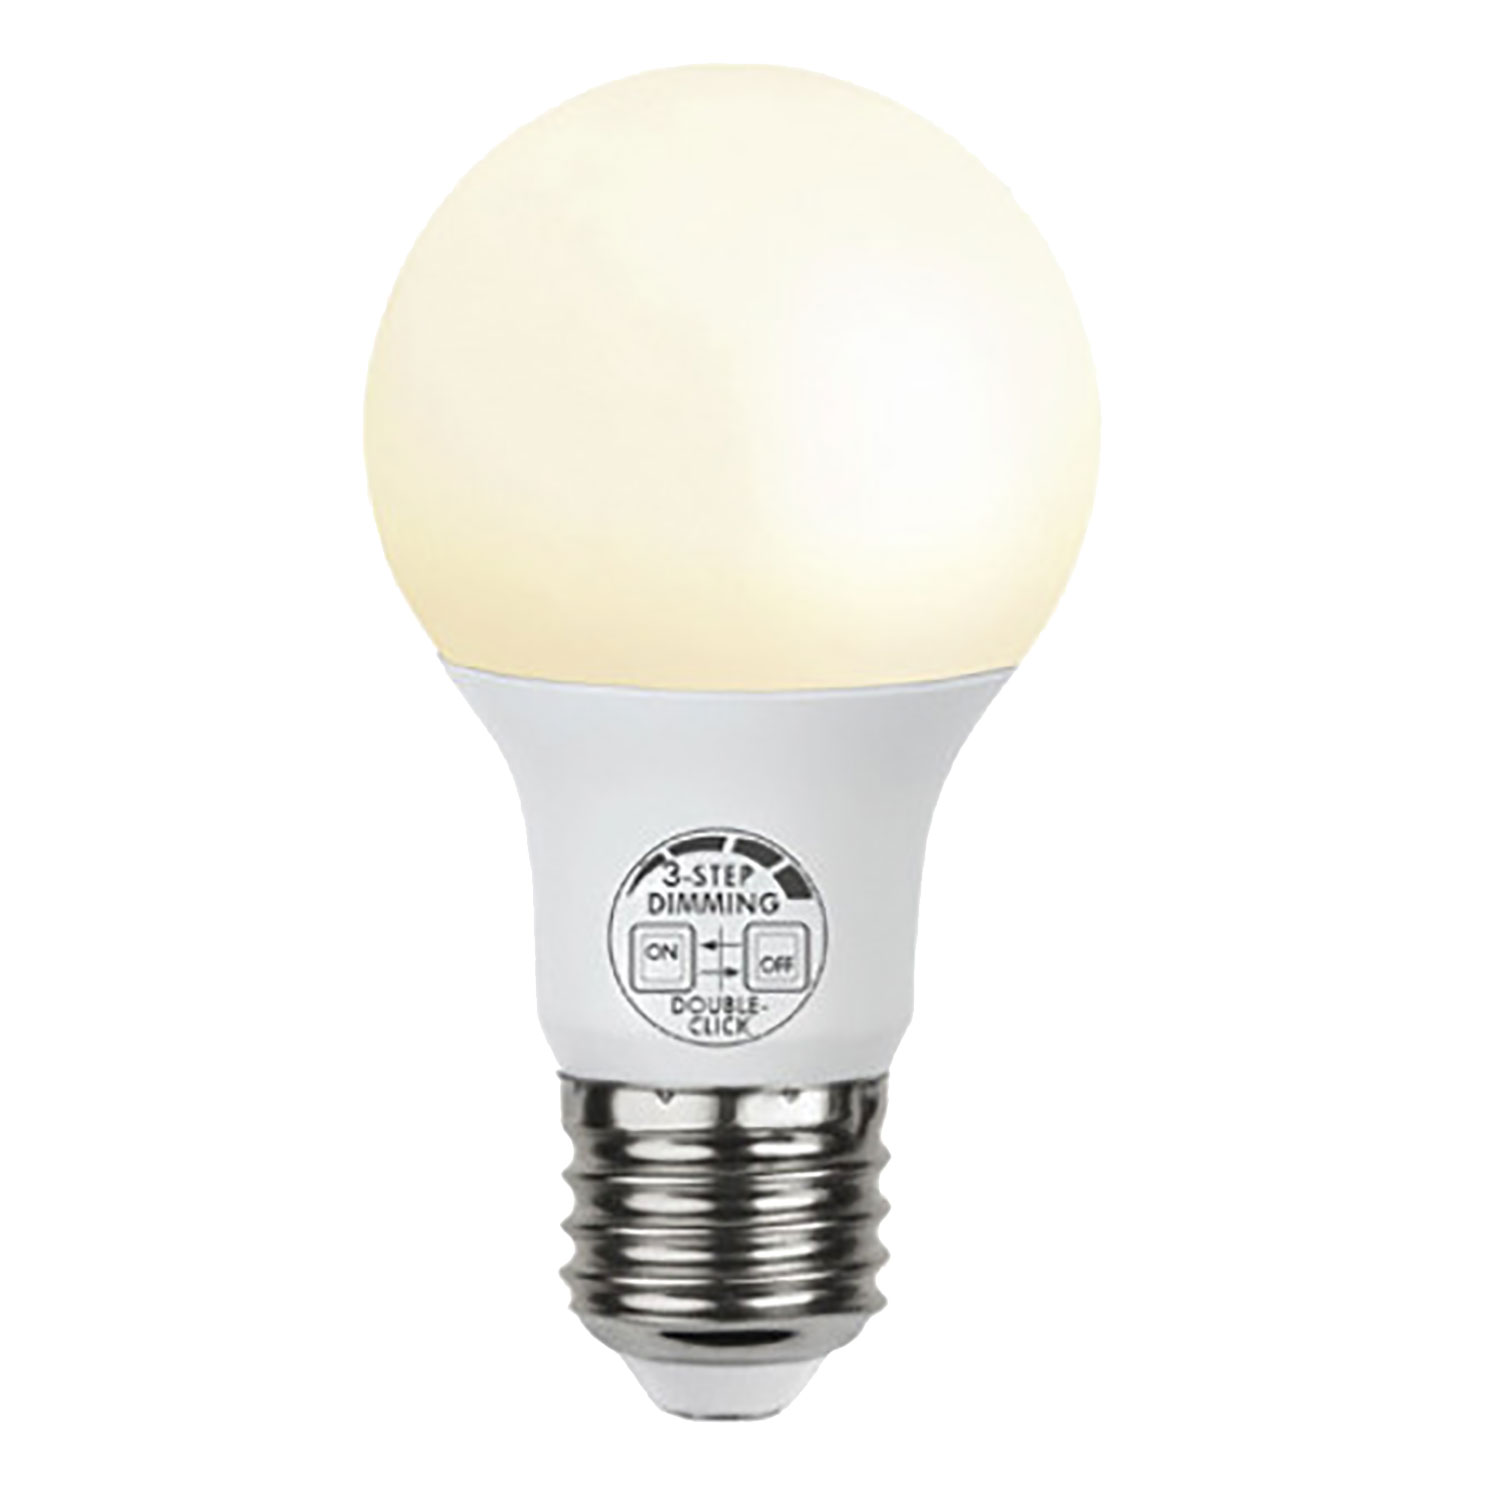 LED-lampa E27 A60 smart LED, white